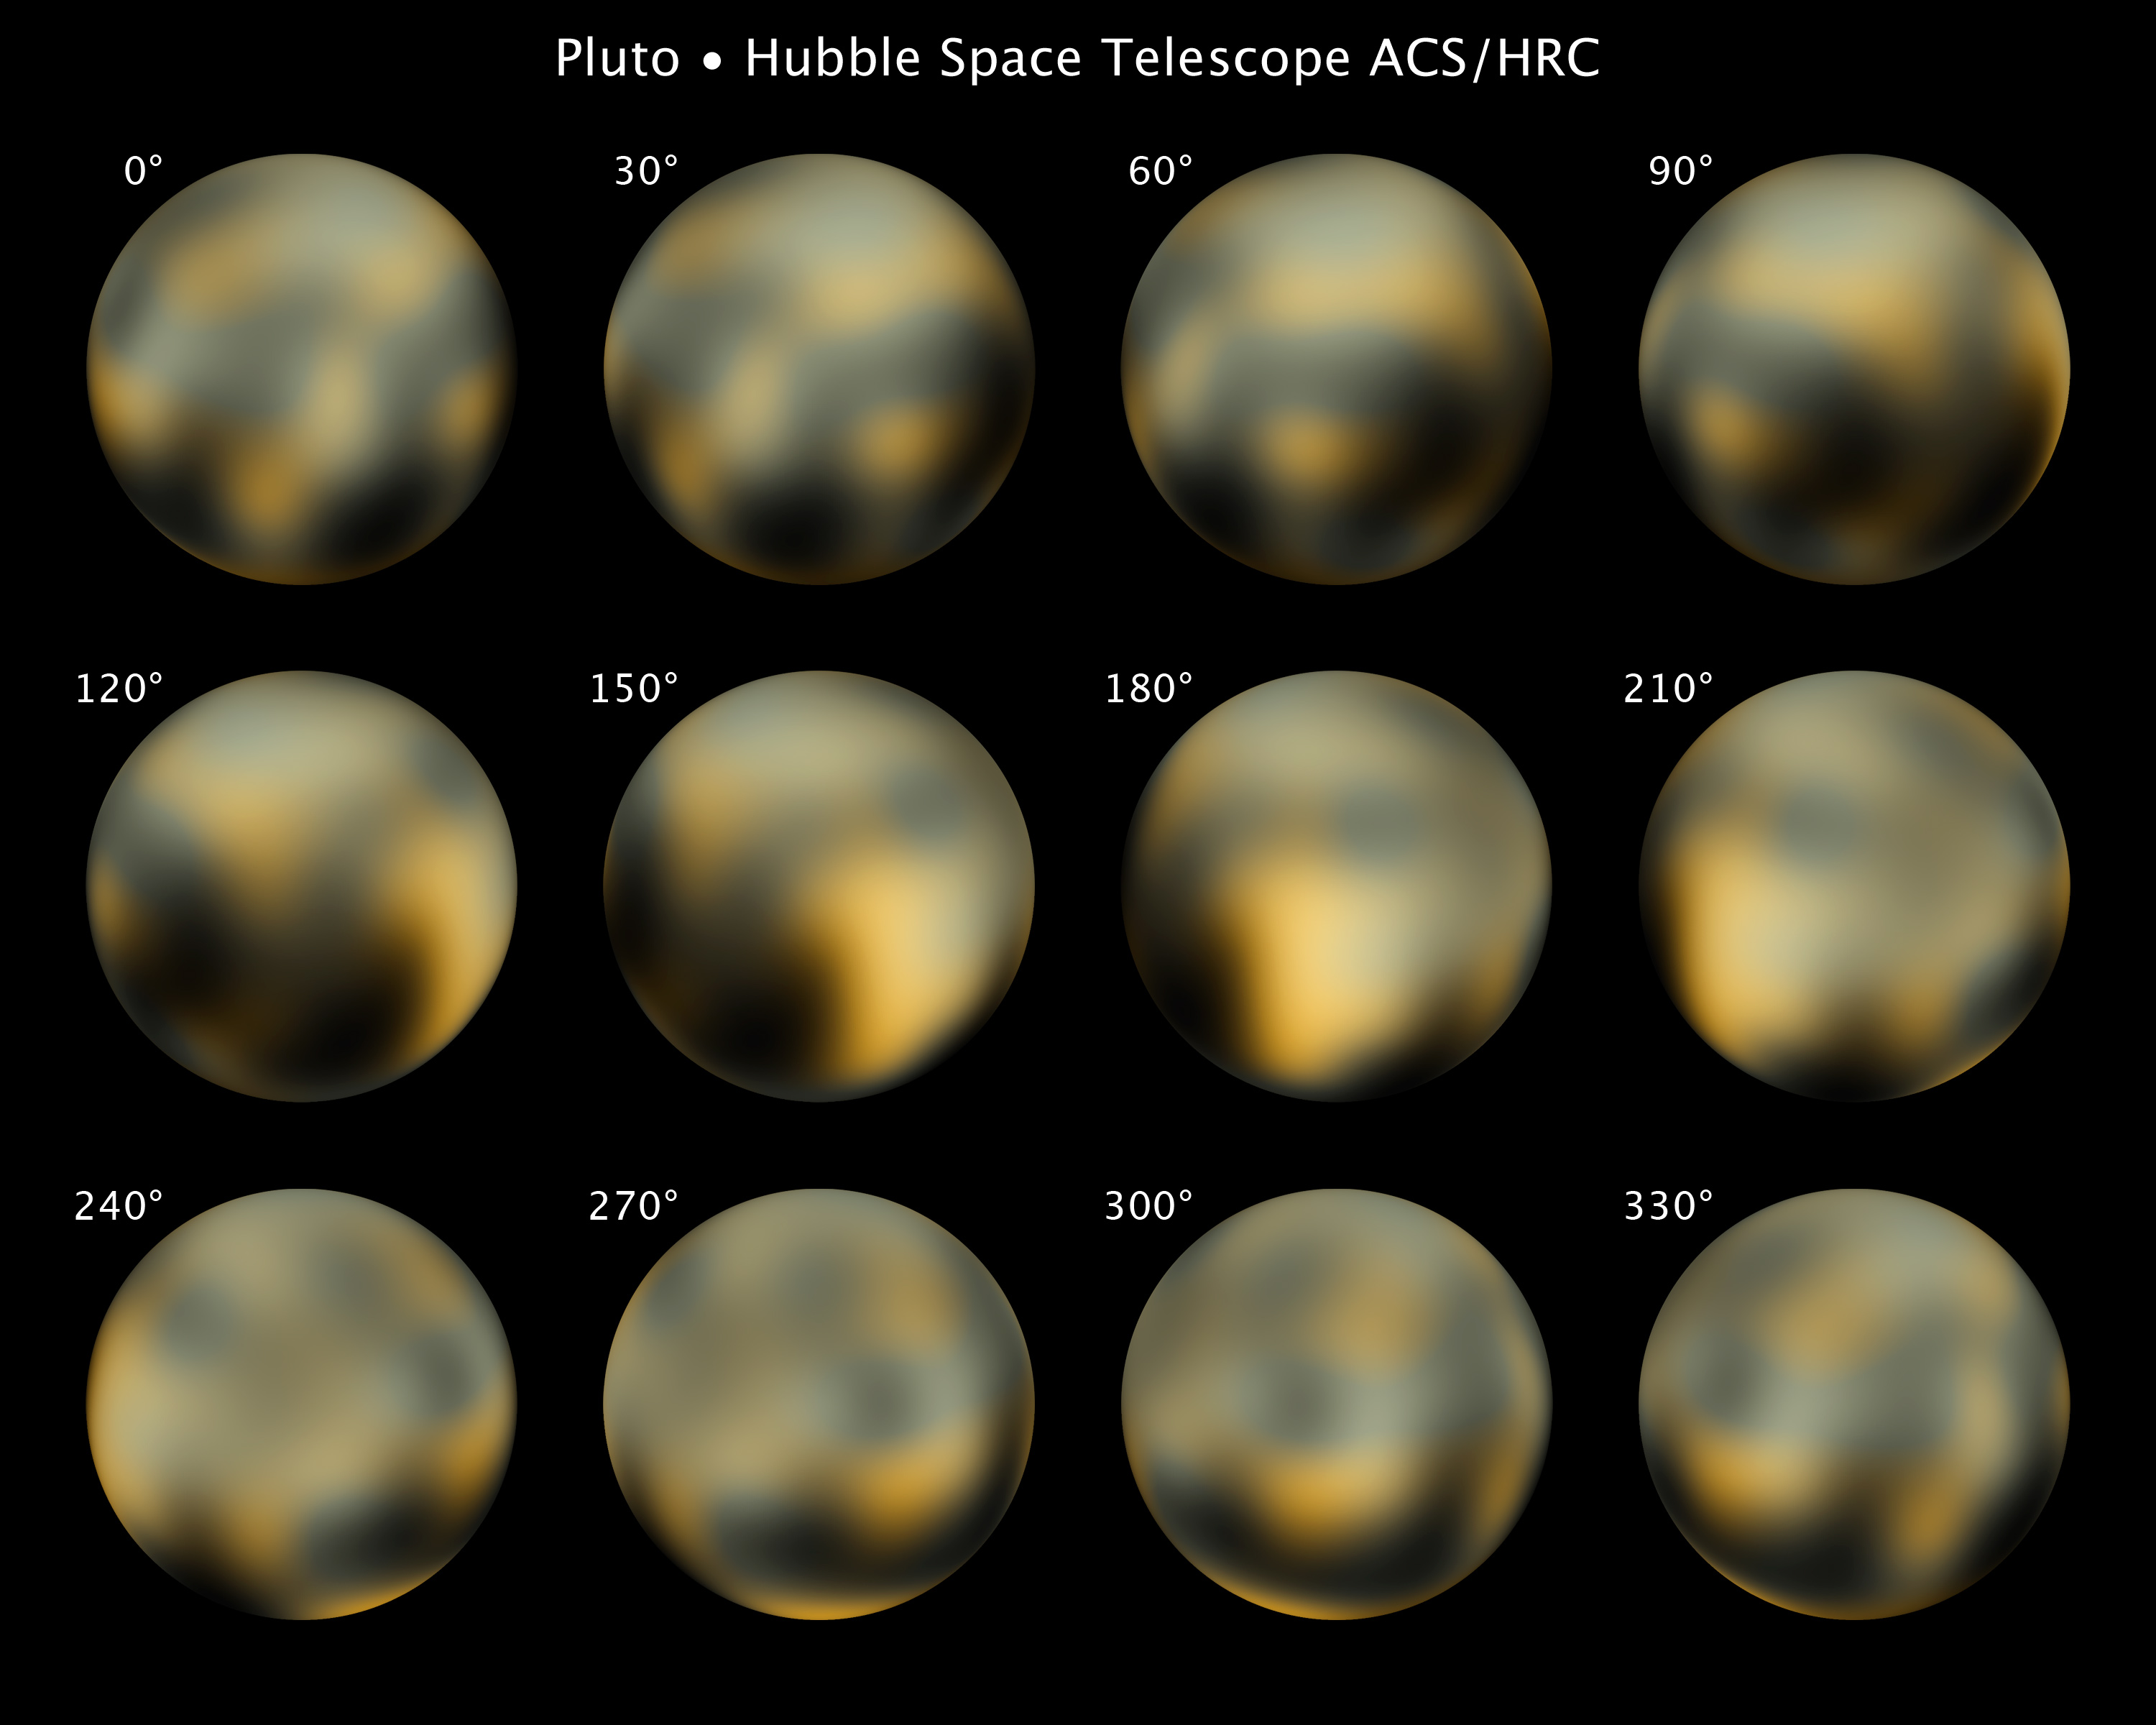 File:Pluto hubble photomap.jpg